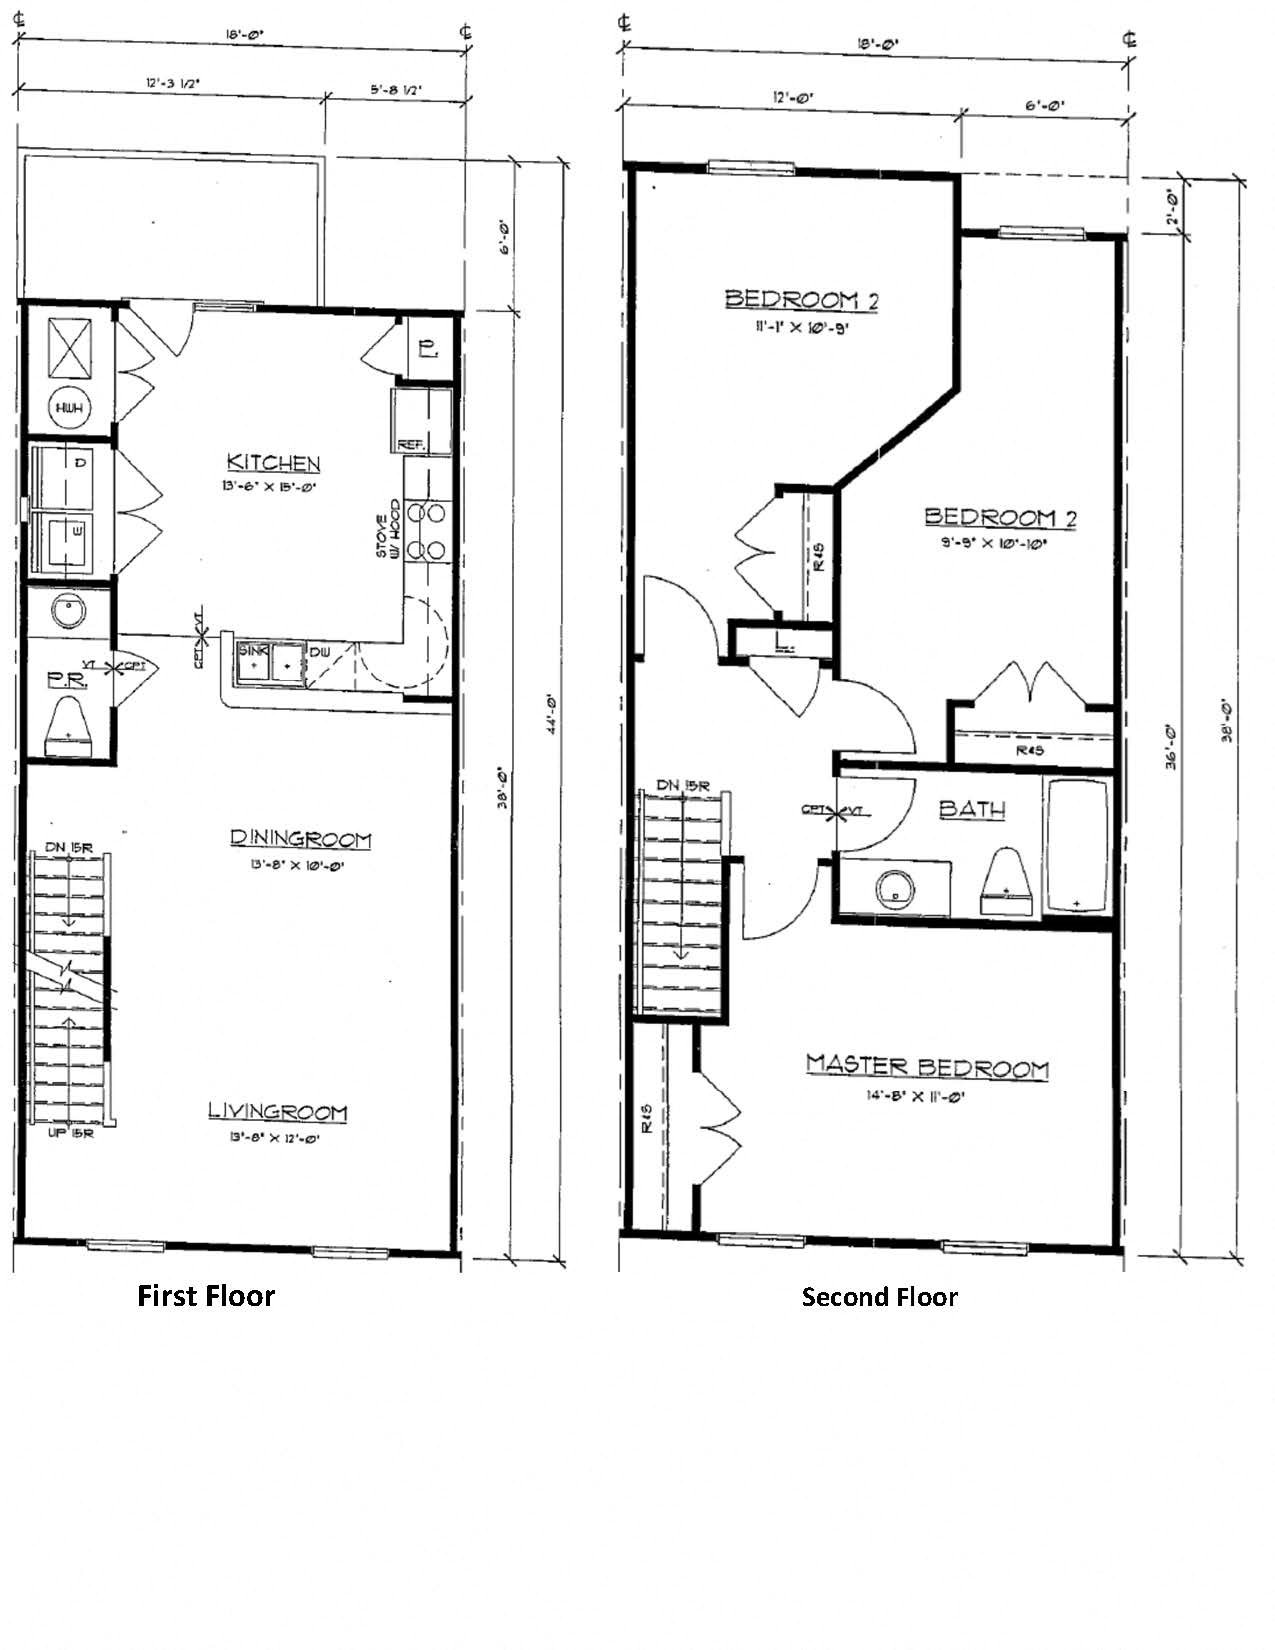 3 Bedroom Townhouse Floor Plan 5